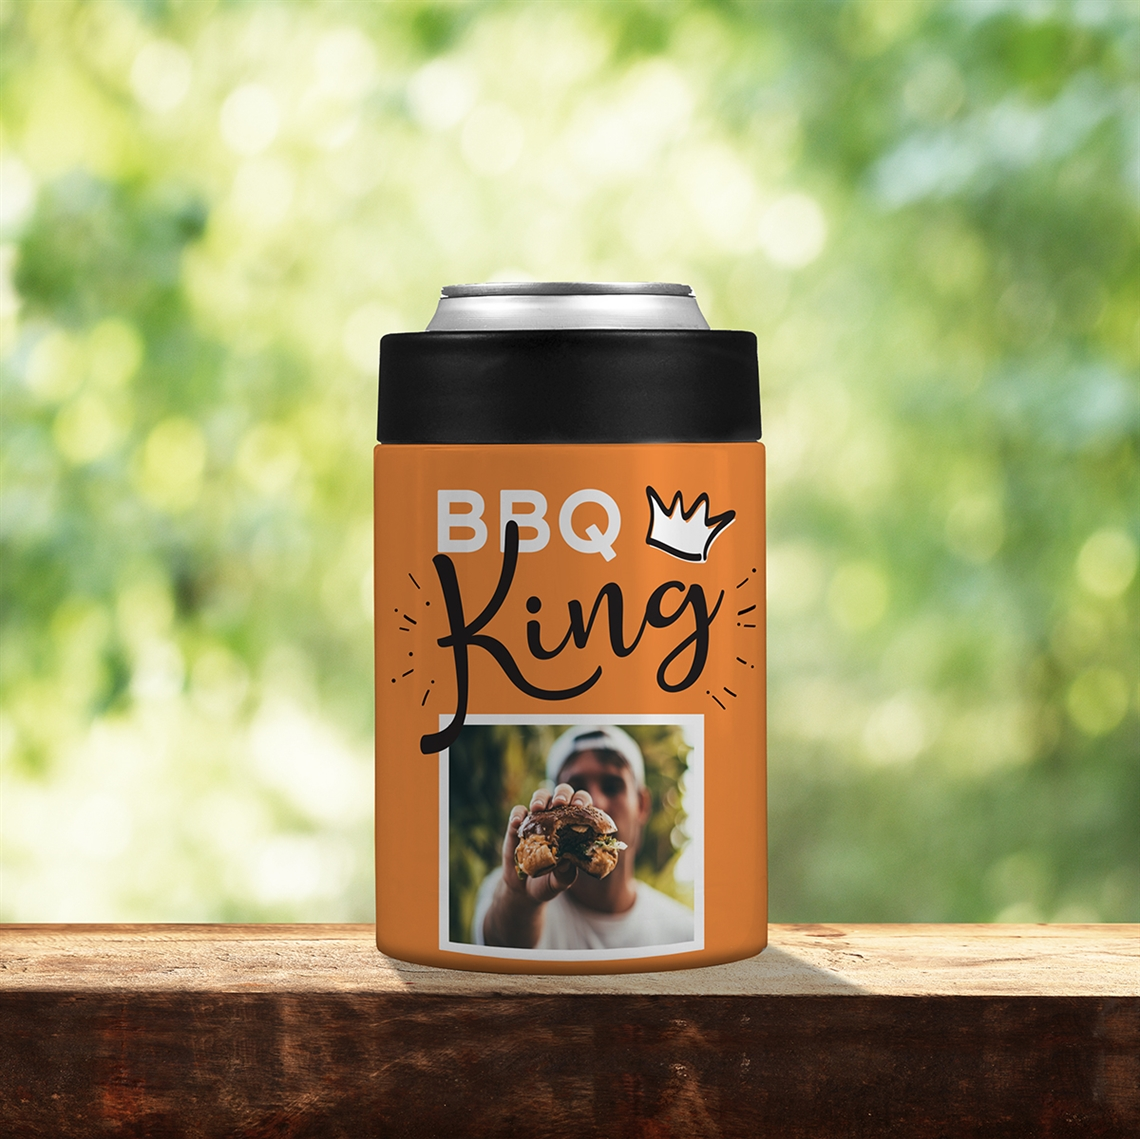 Picture of BBQ King Orange Stainless Steel Koozie